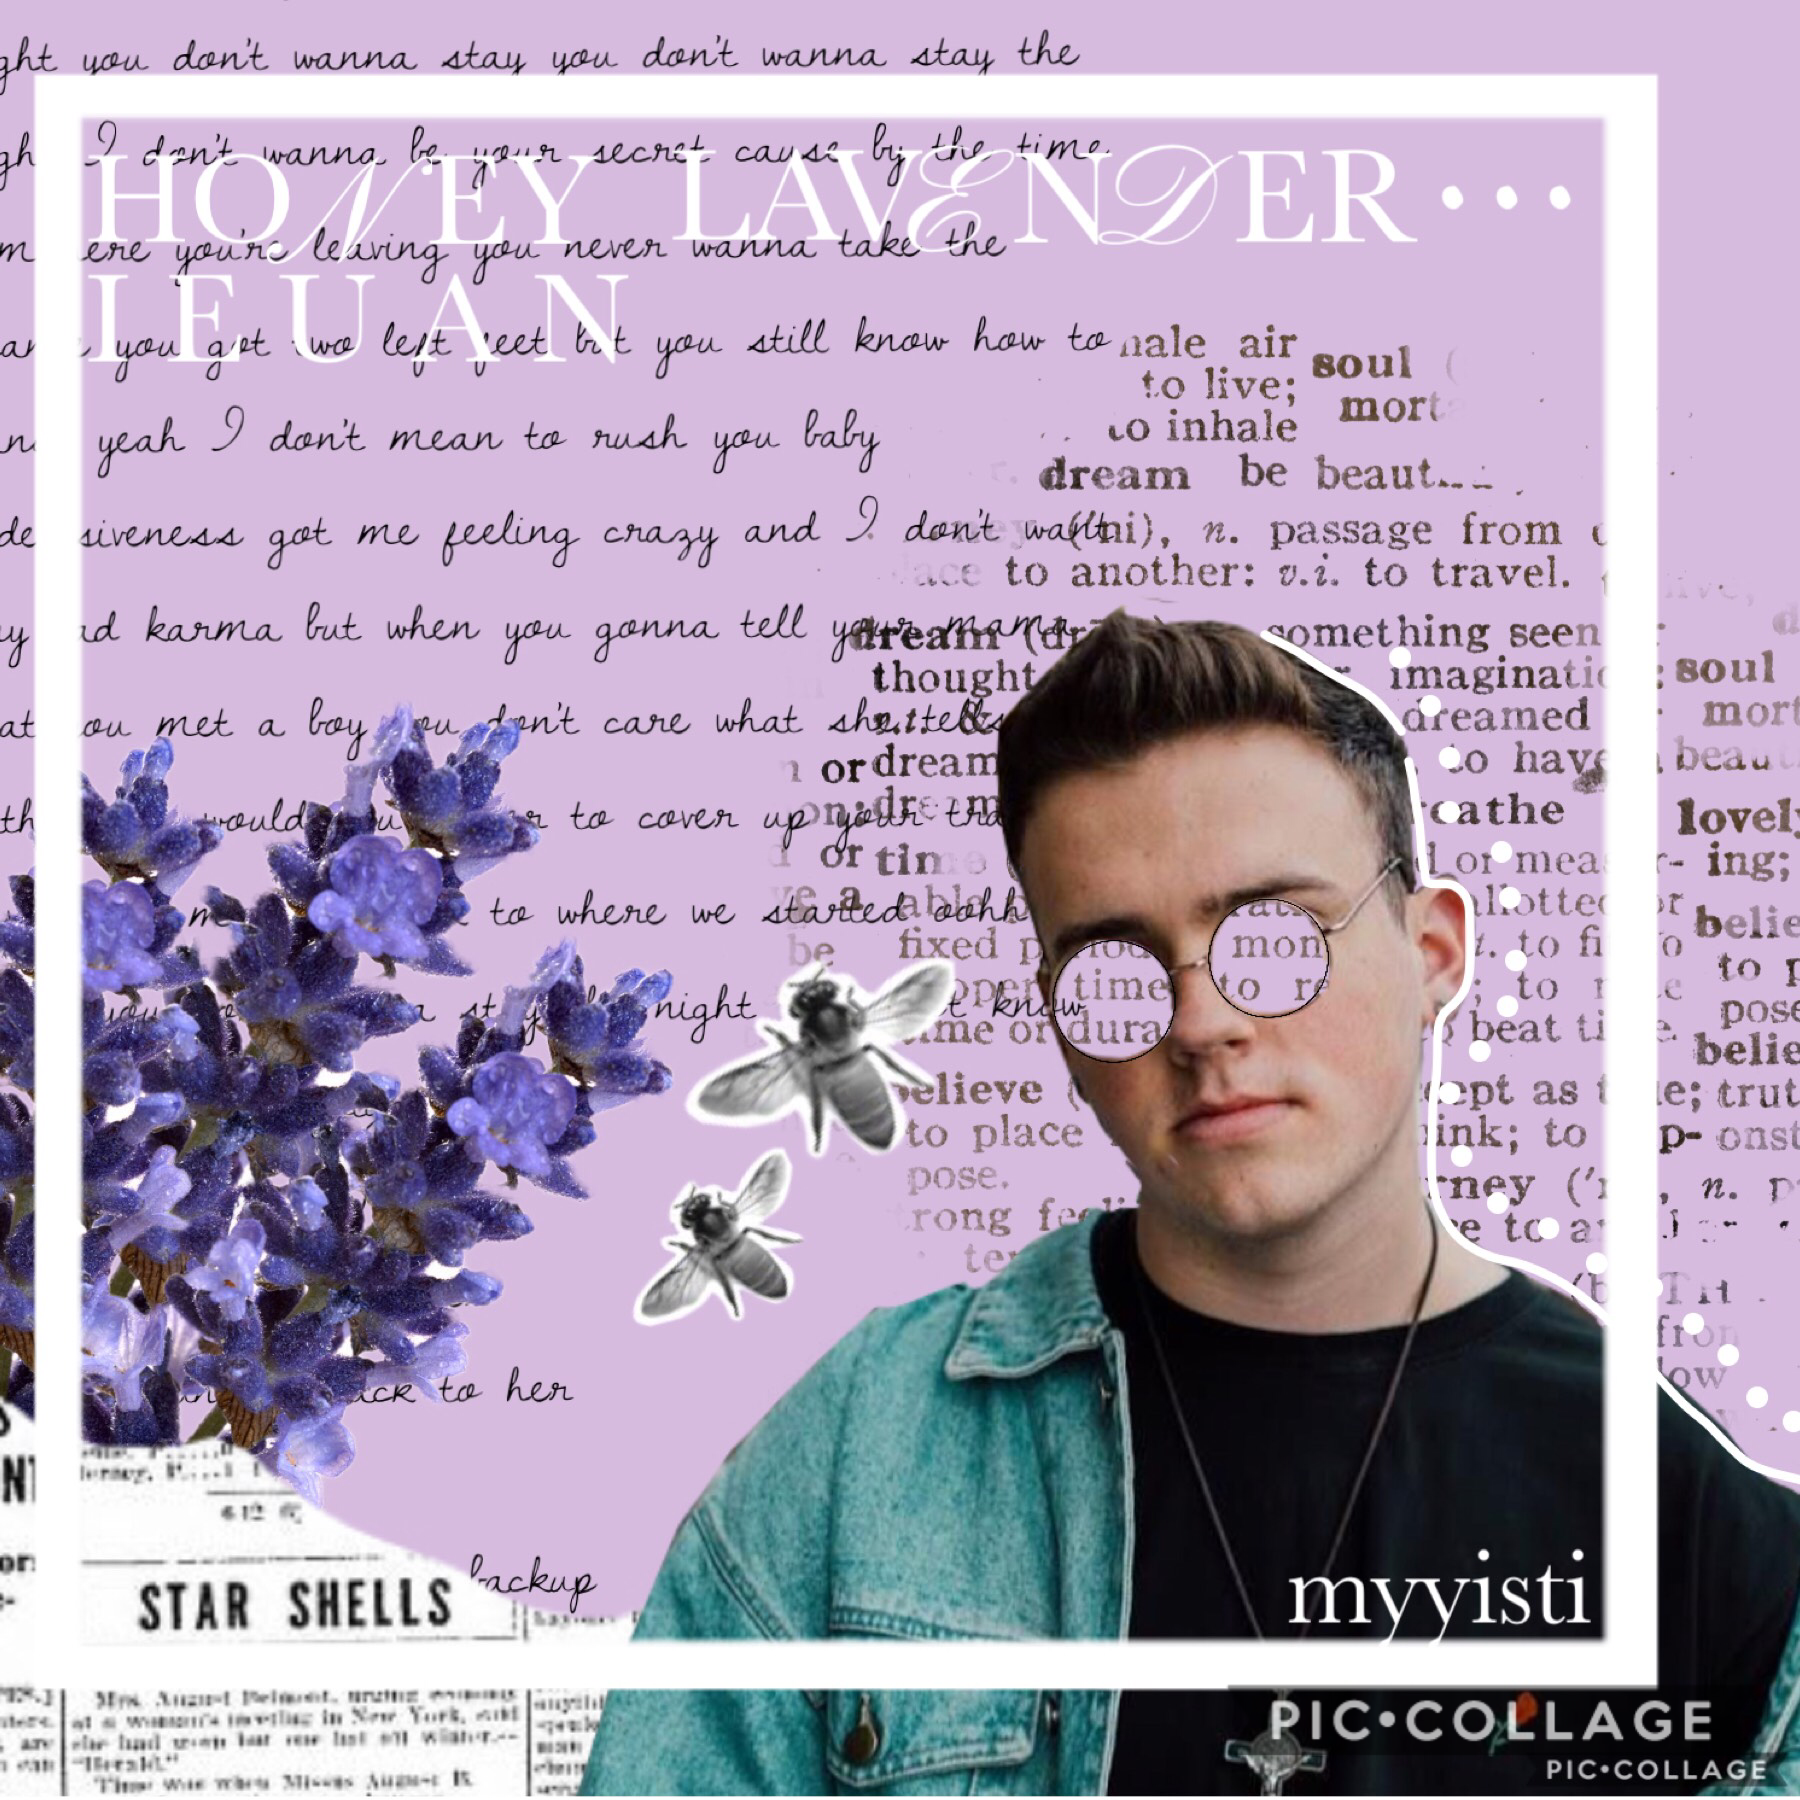 ieuan - honey lavender (tap here) I just love dis song sooo mucchhhh! but I didn't rlly try in dis collage :/